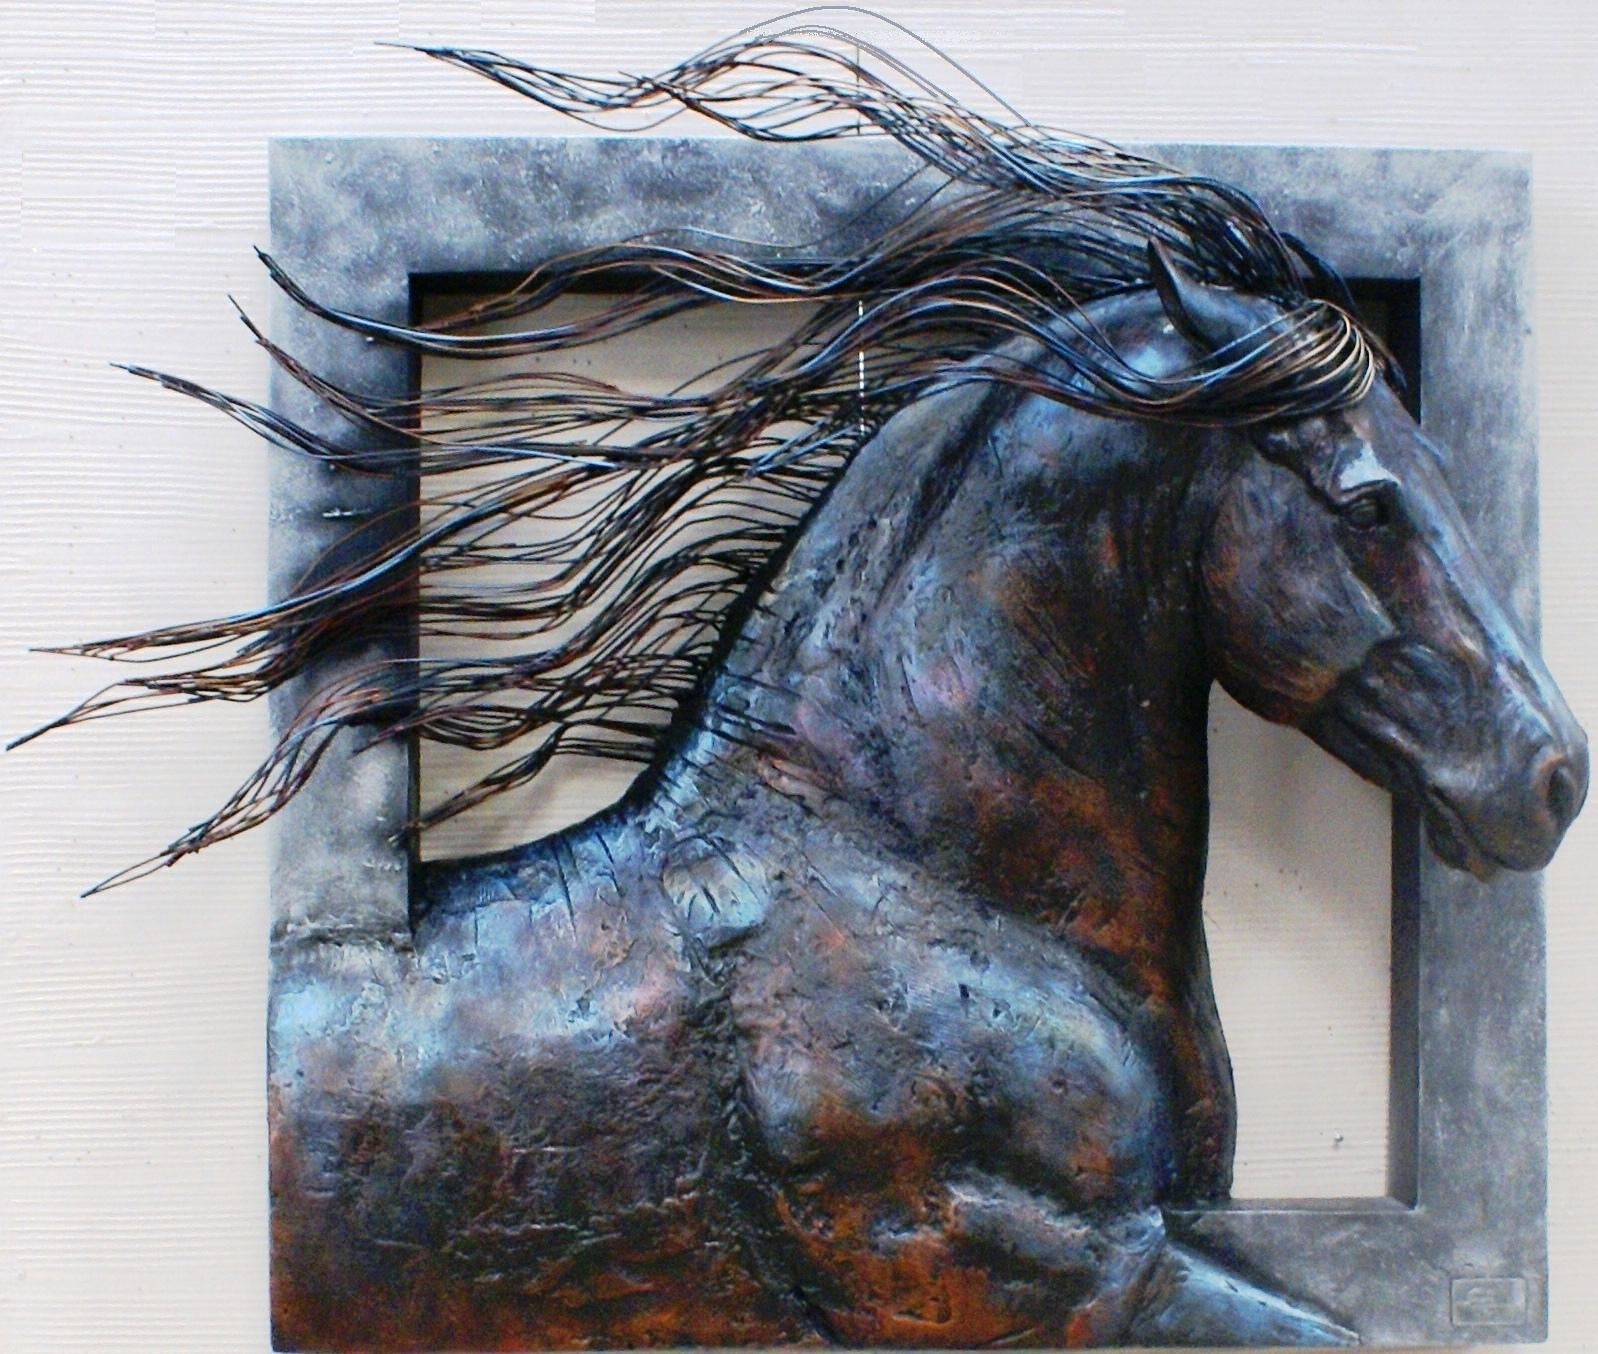 Wall Art Designs Awesome 10 Metal Wall Art Sculpture, 3D Metal Wall throughout 3D Metal Wall Art (Image 19 of 20)